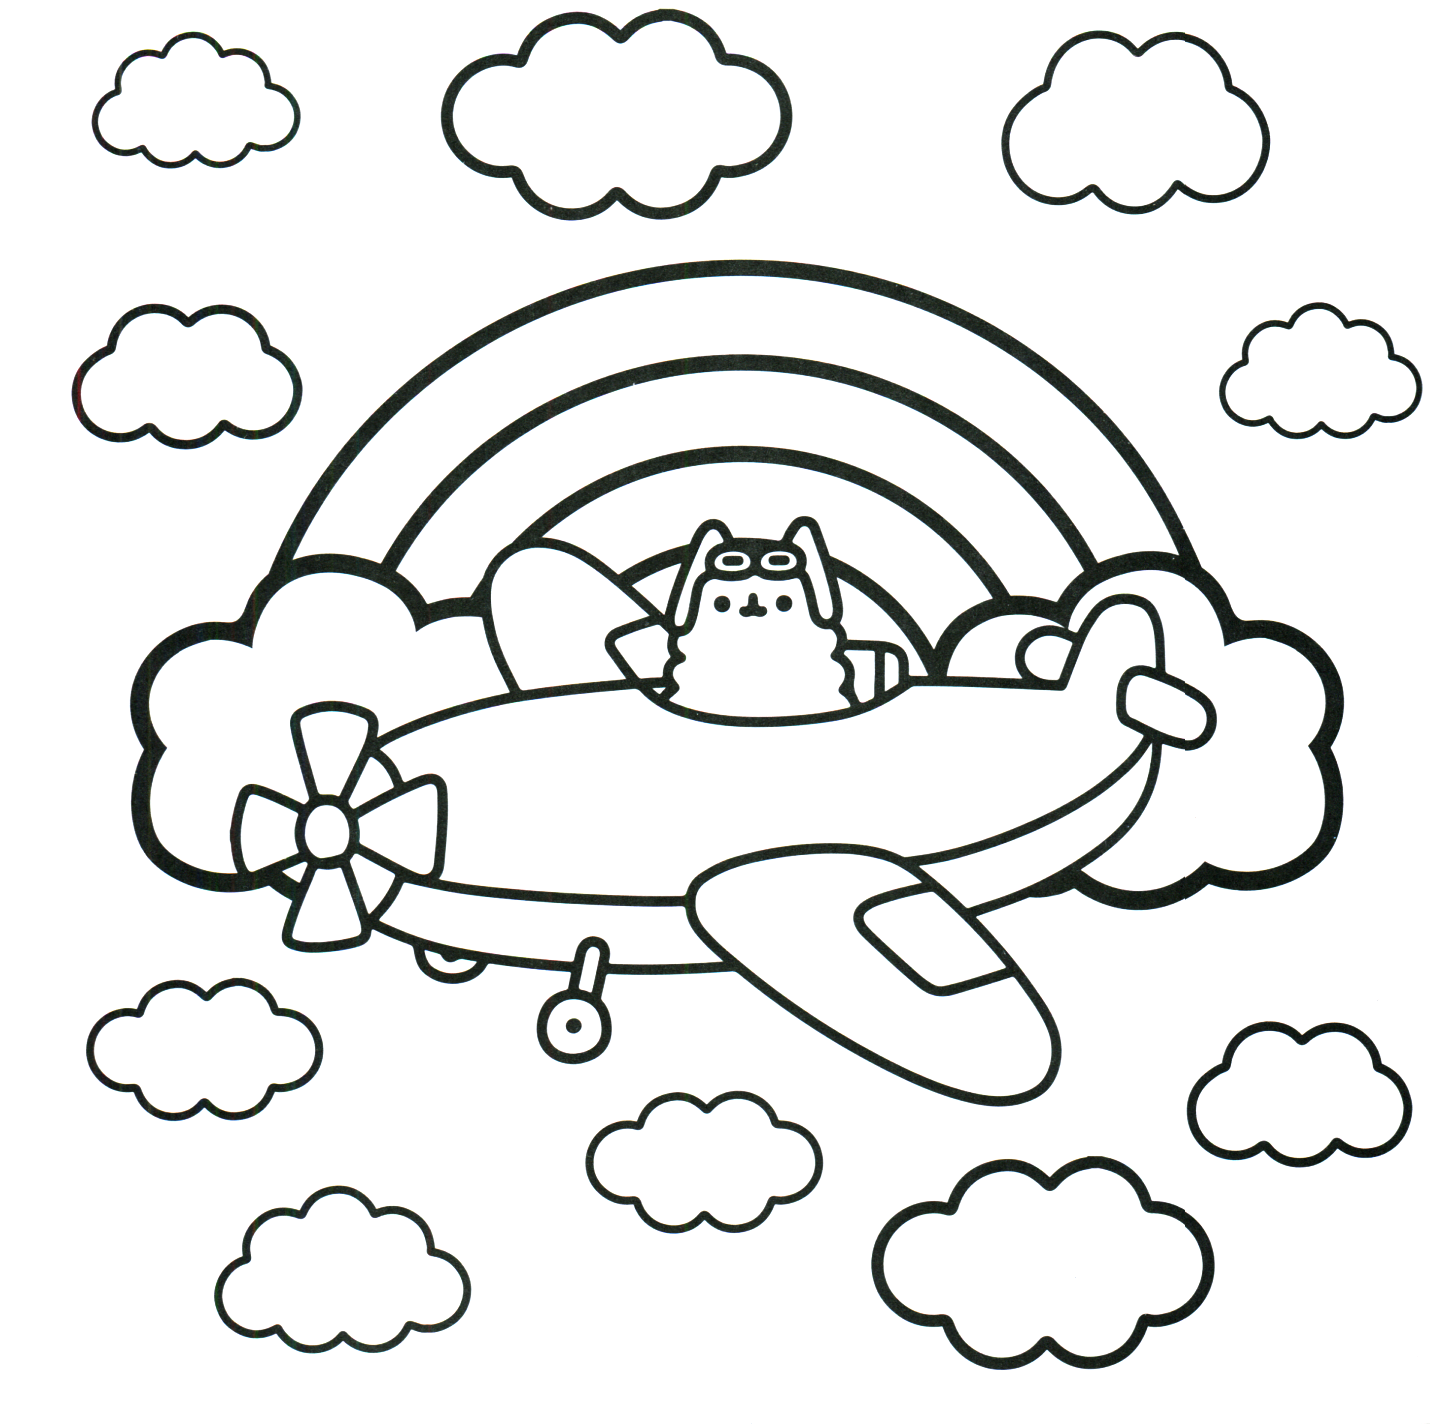 pusheen cats coloring pages لم يسبق له مثيل الصور + tier3.xyz | 1424x1430